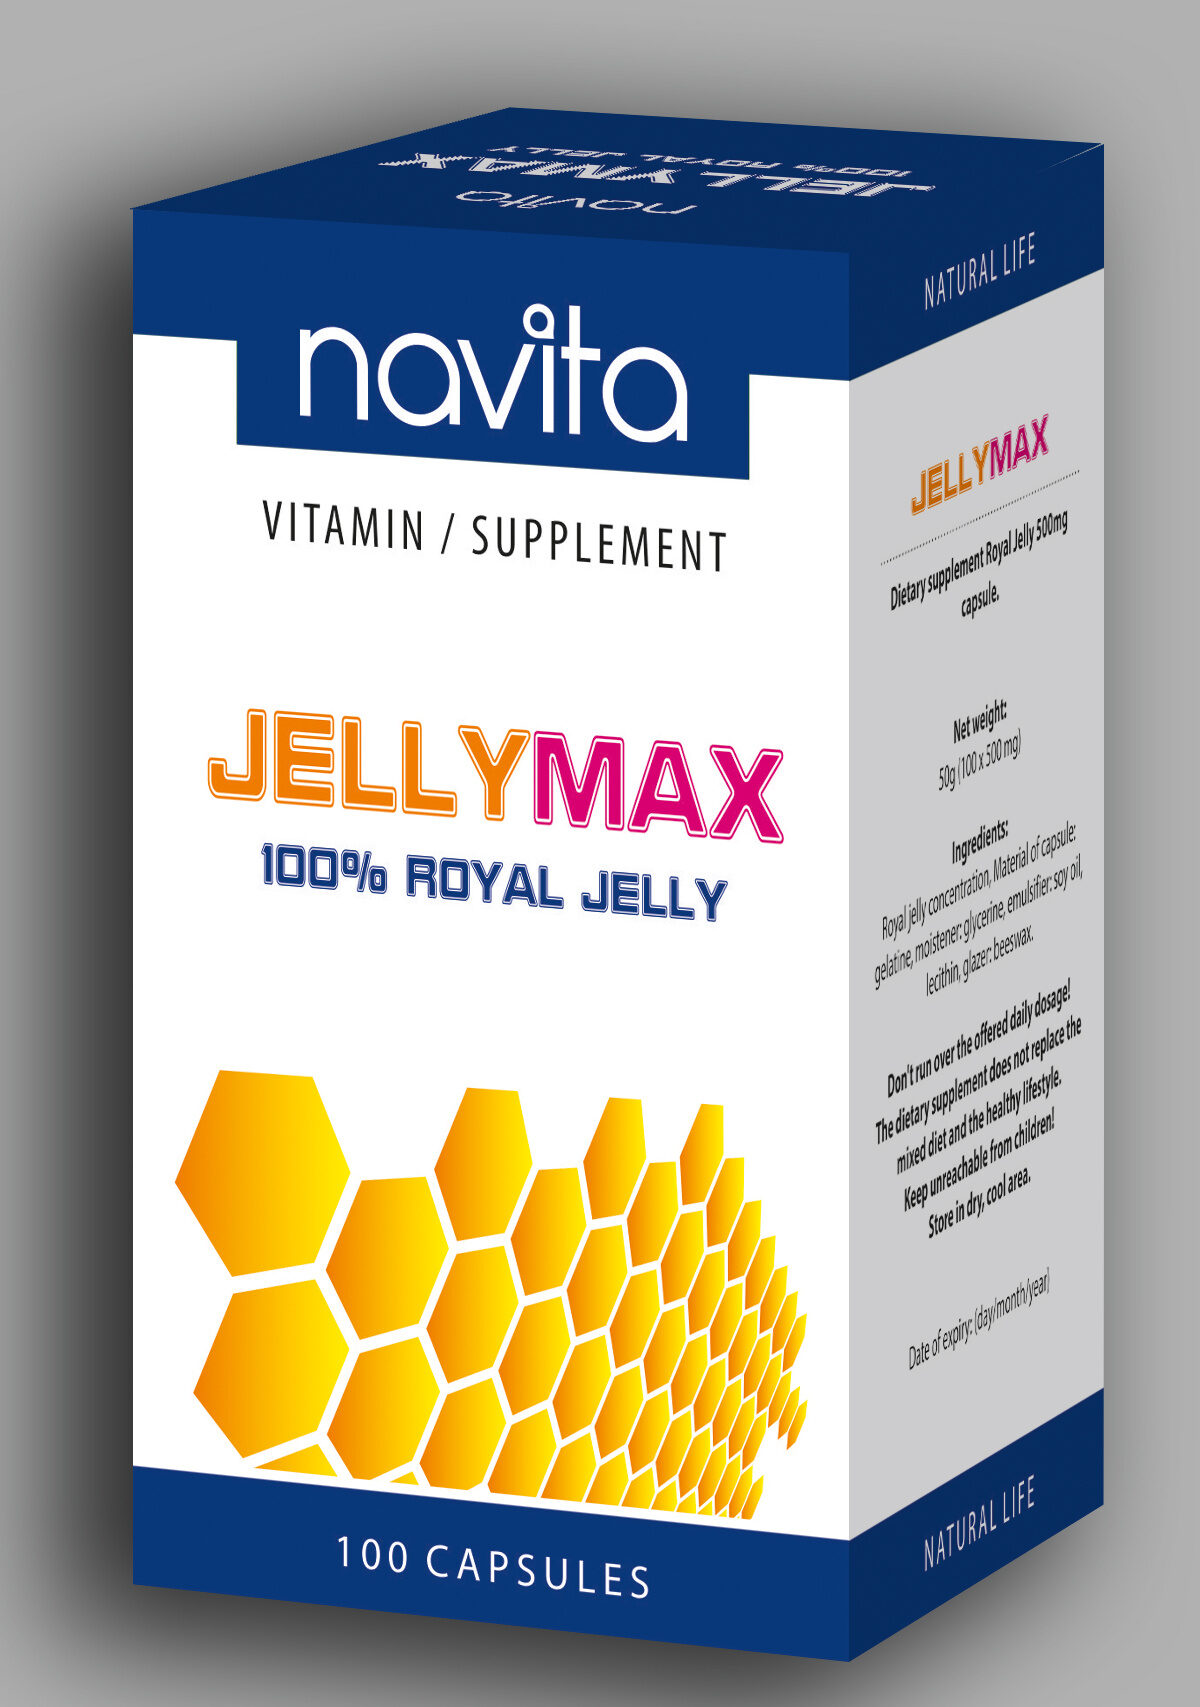 JELLYMAX 100% ROYAL JELLY - Product